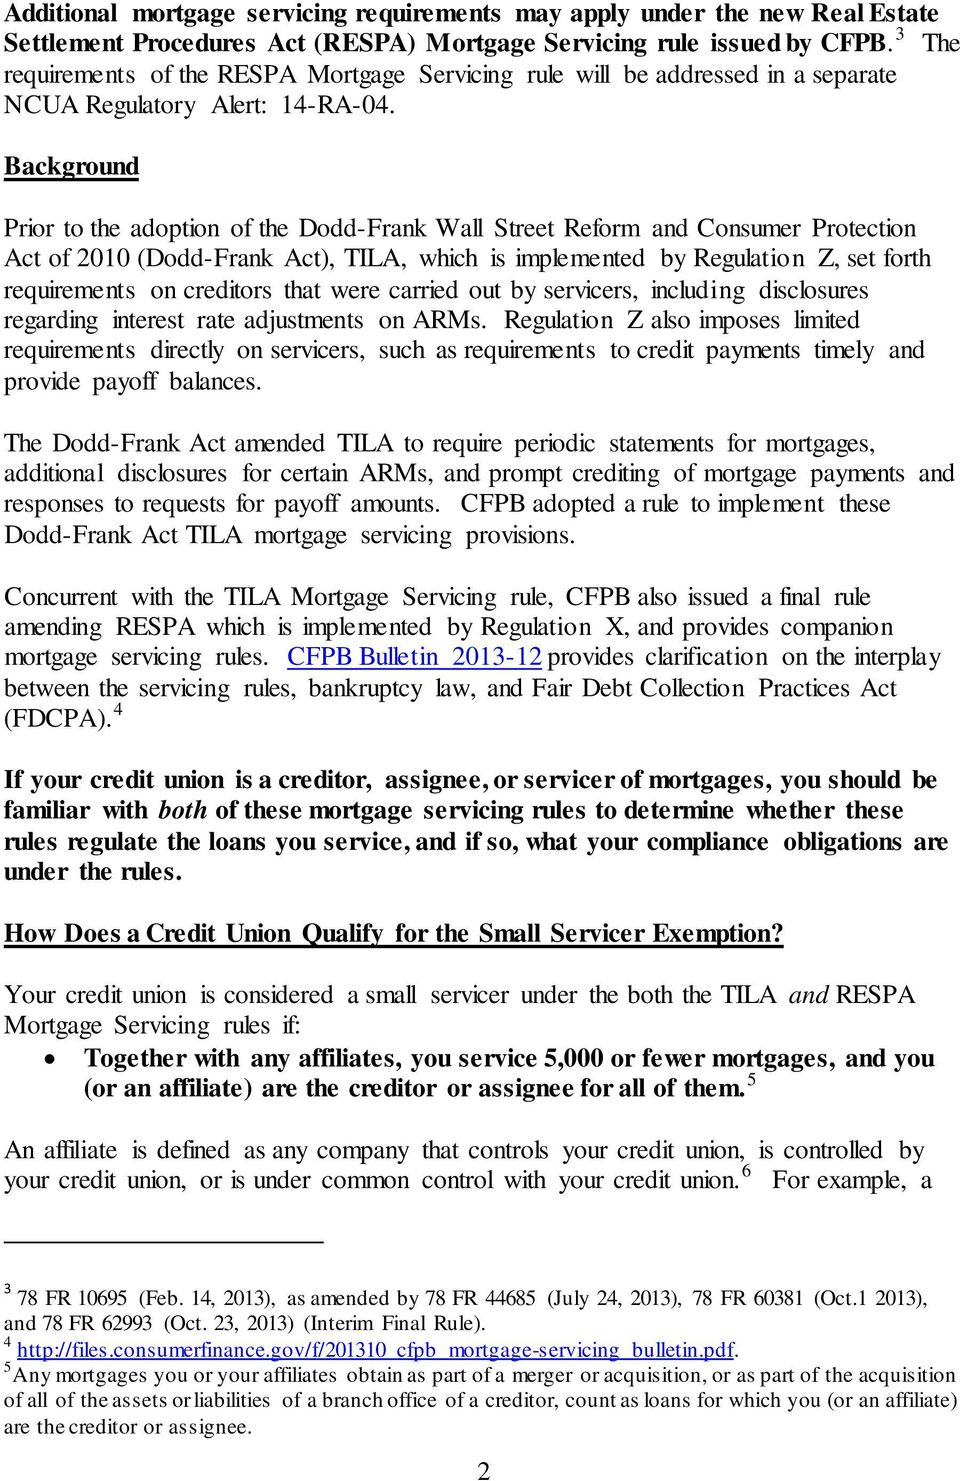 Background Prior to the adoption of the Dodd-Frank Wall Street Reform and Consumer Protection Act of 2010 (Dodd-Frank Act), TILA, which is implemented by Regulation Z, set forth requirements on